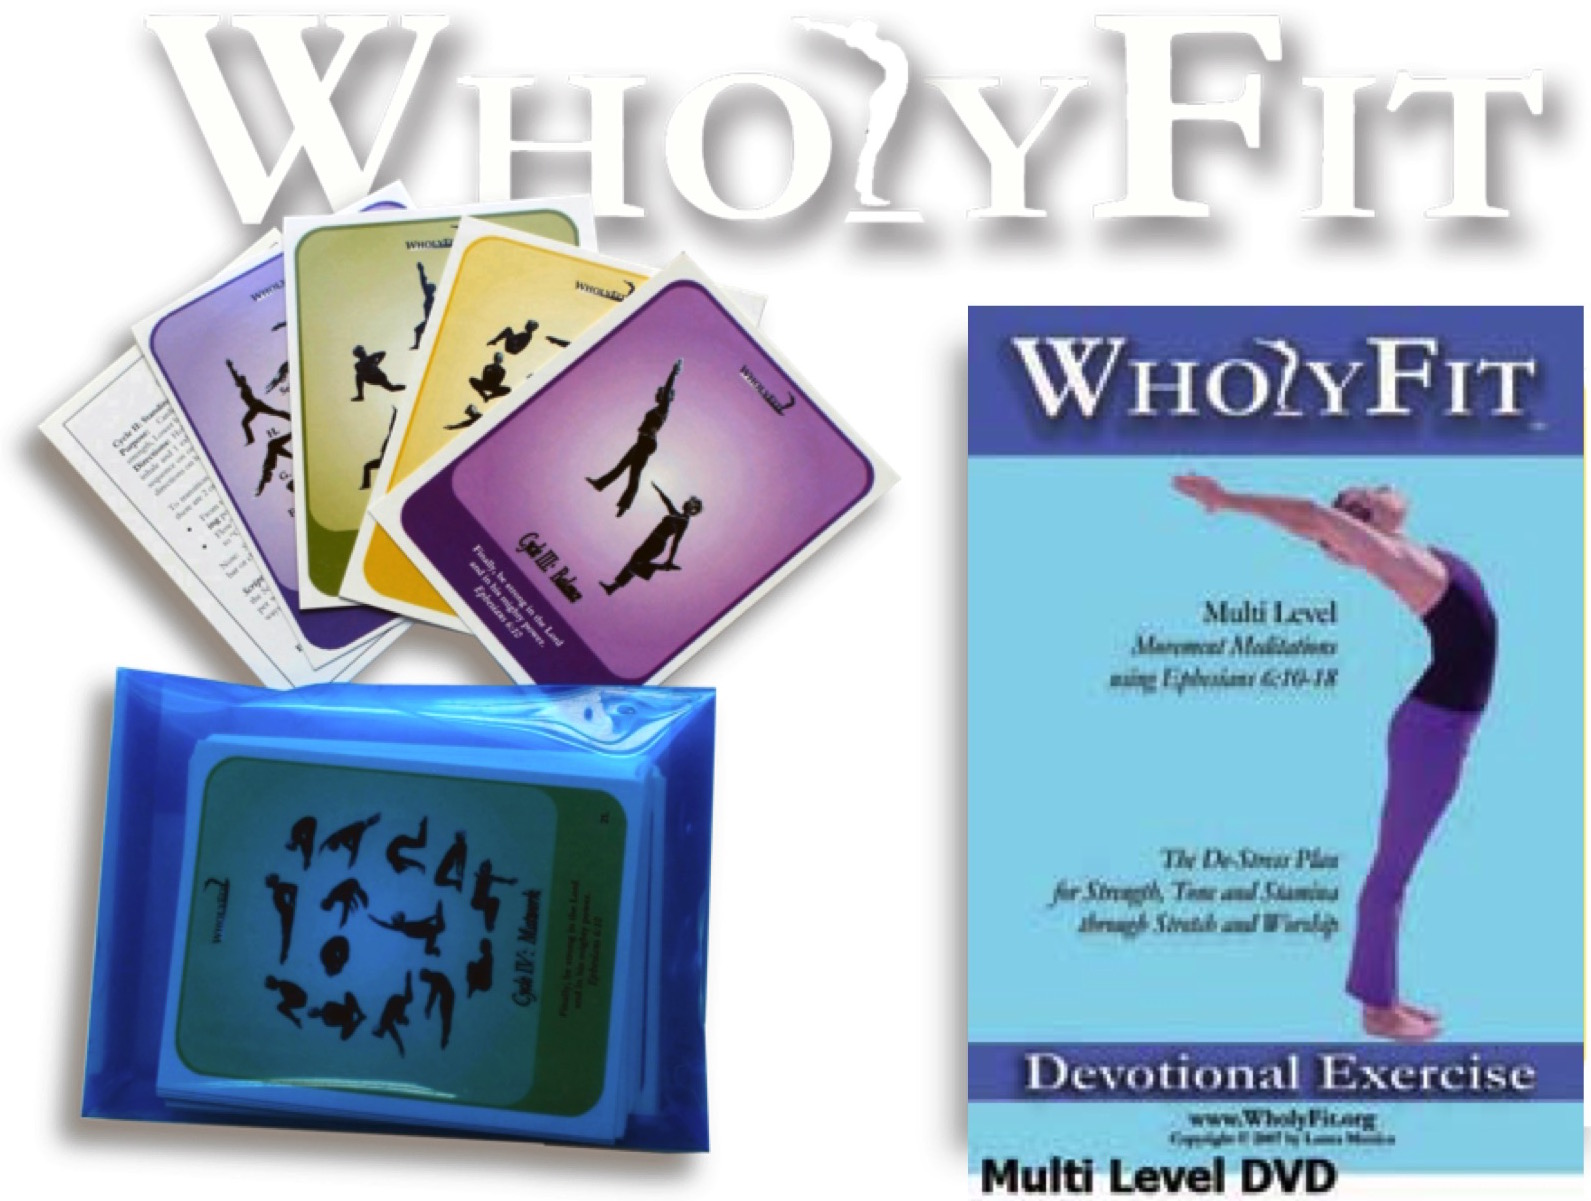 wholyfitcards